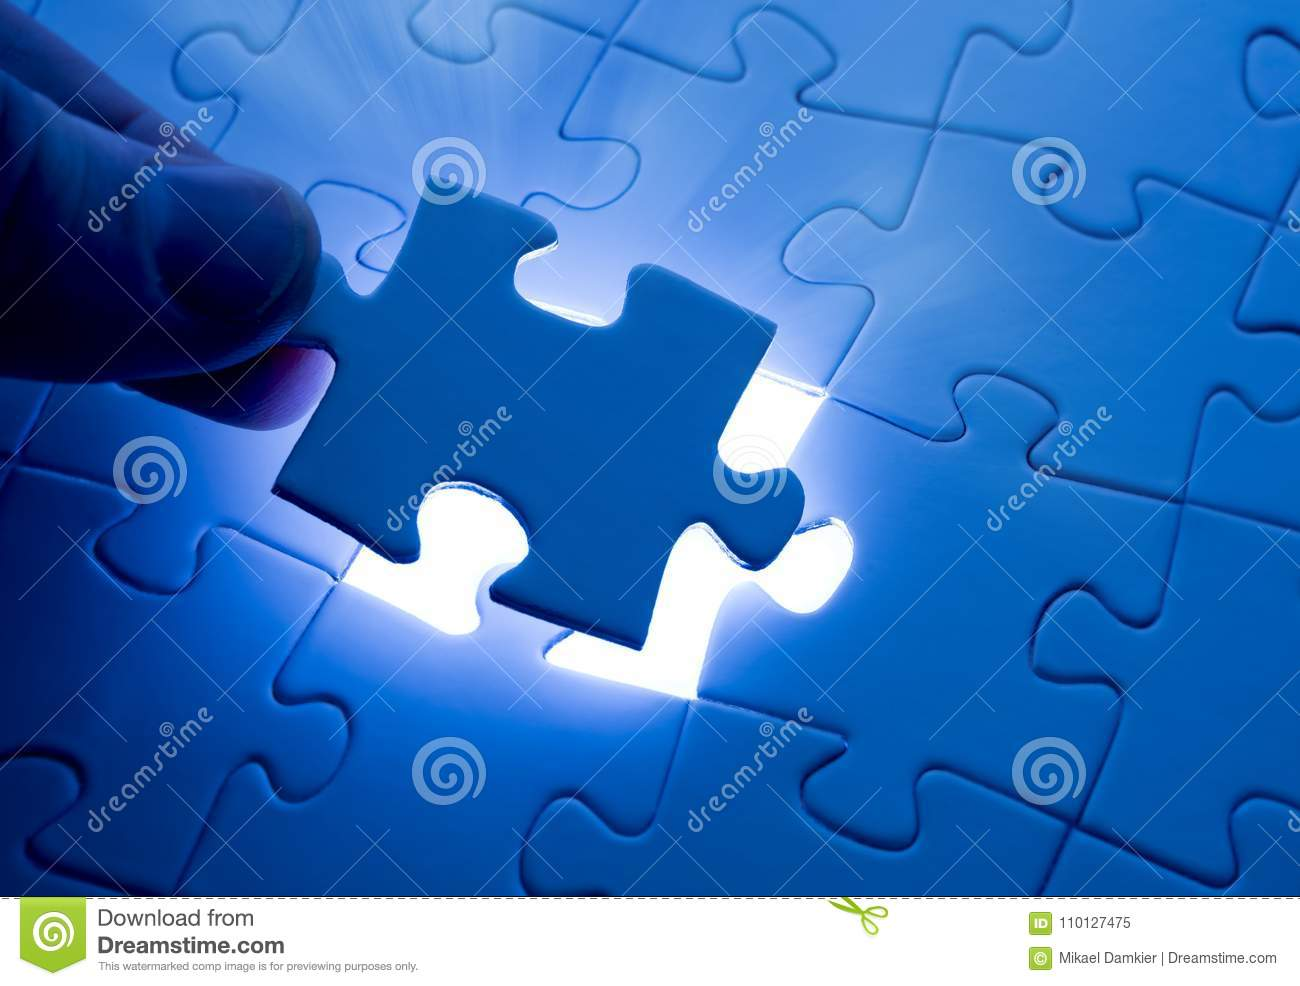 Placing last piece of jigsaw puzzle